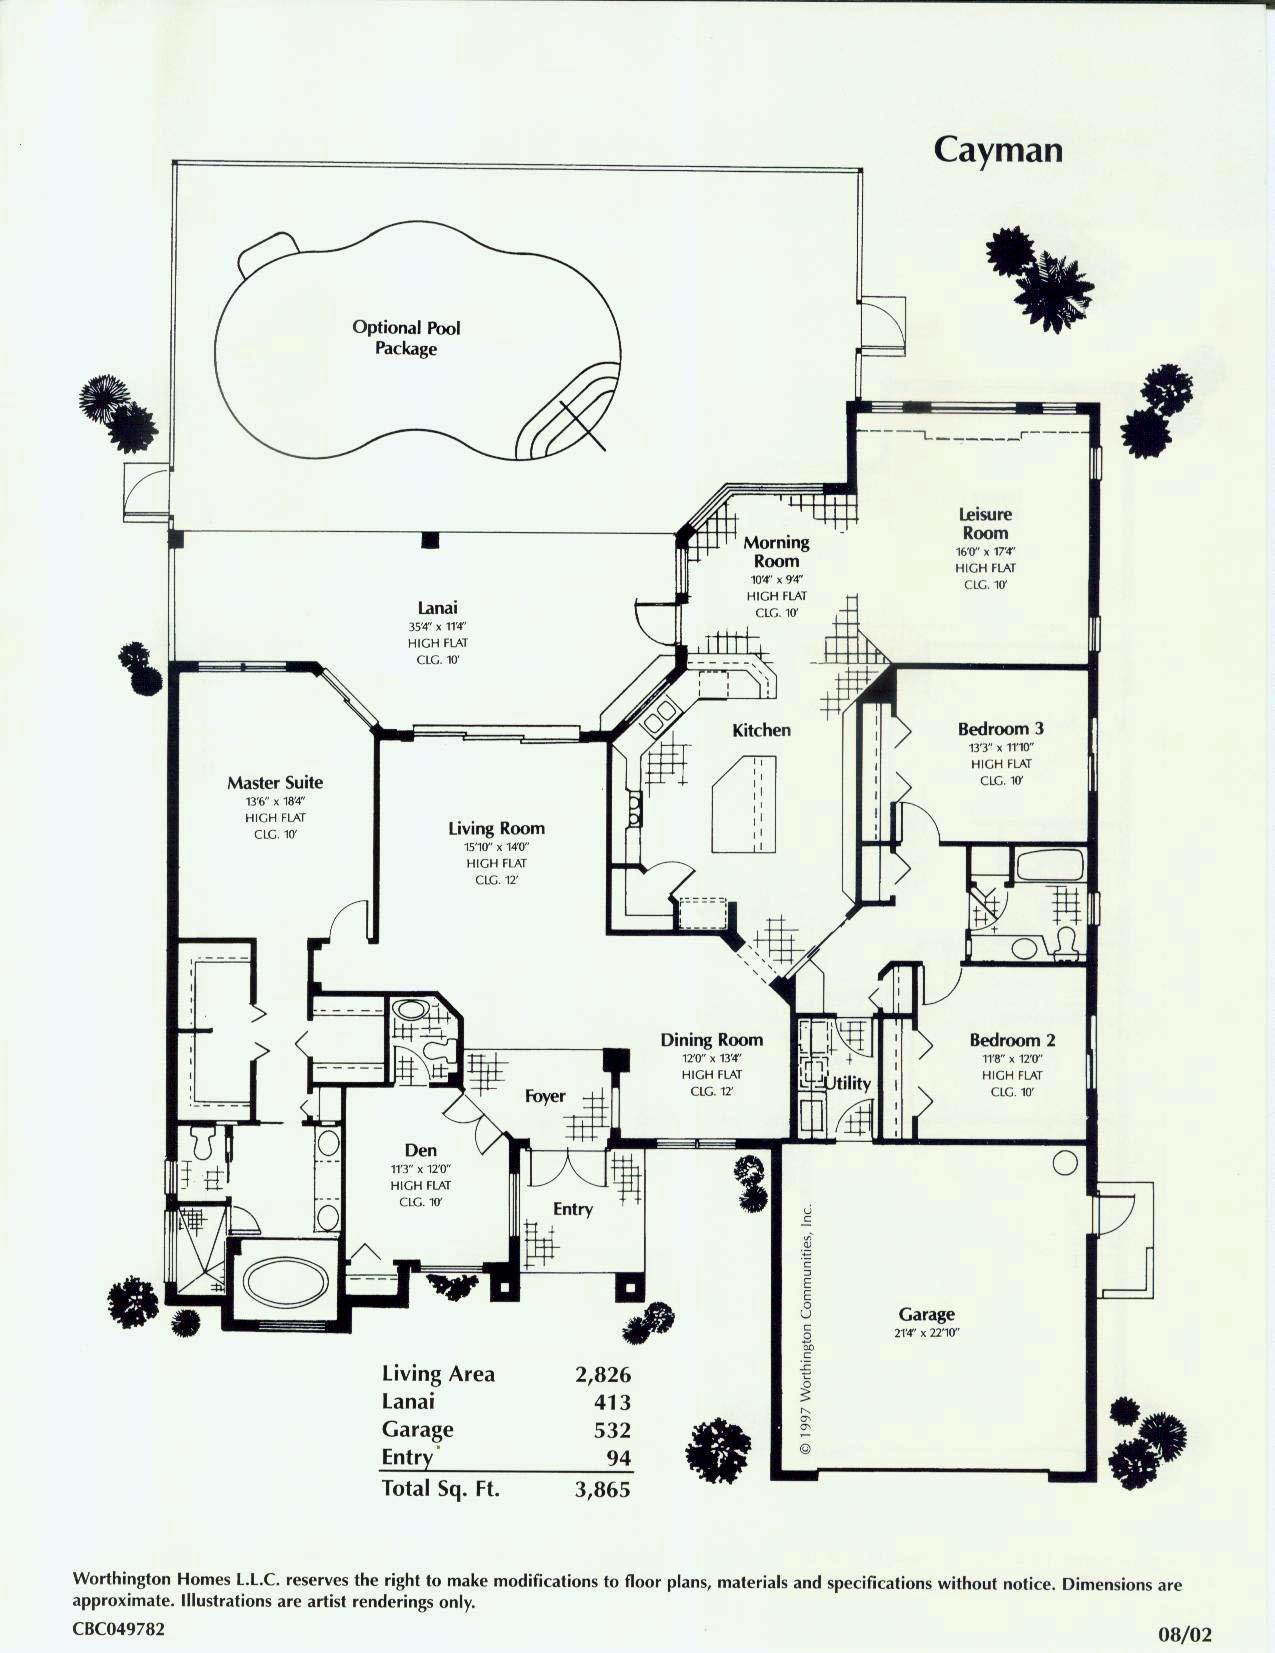 Southwest florida old florida style custom homes for Florida home builders floor plans